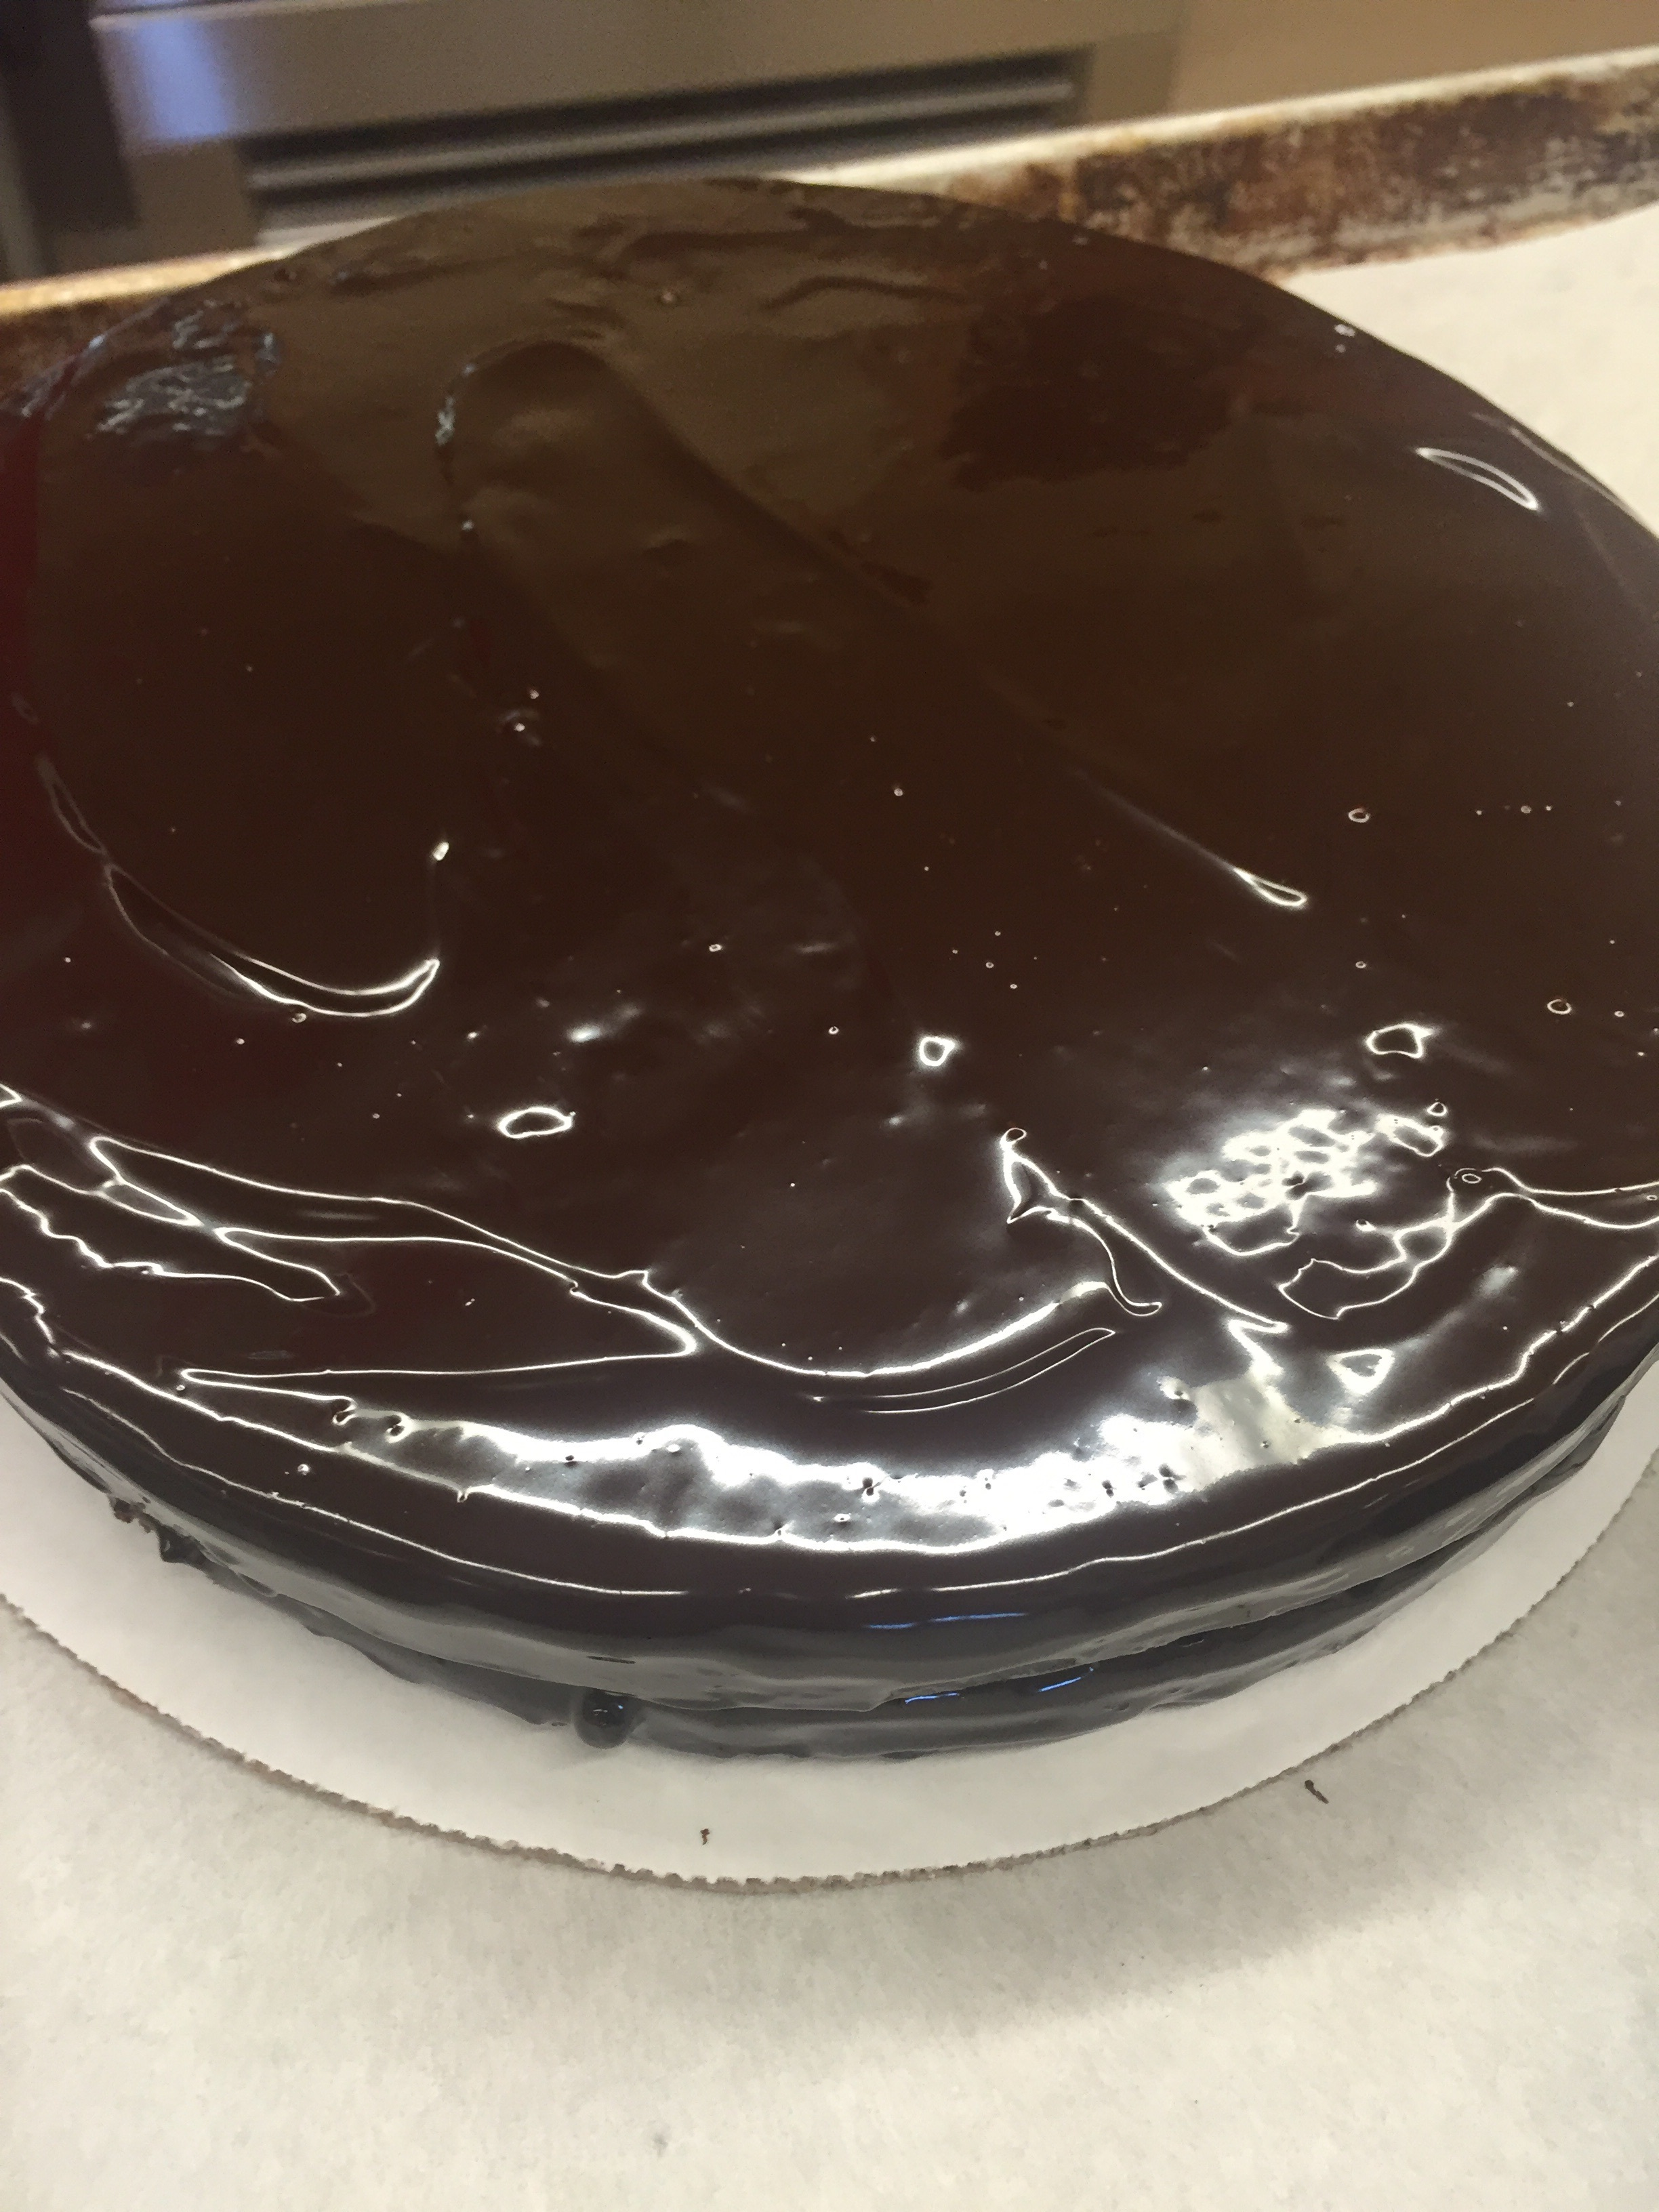 The finished Sacher torte!I